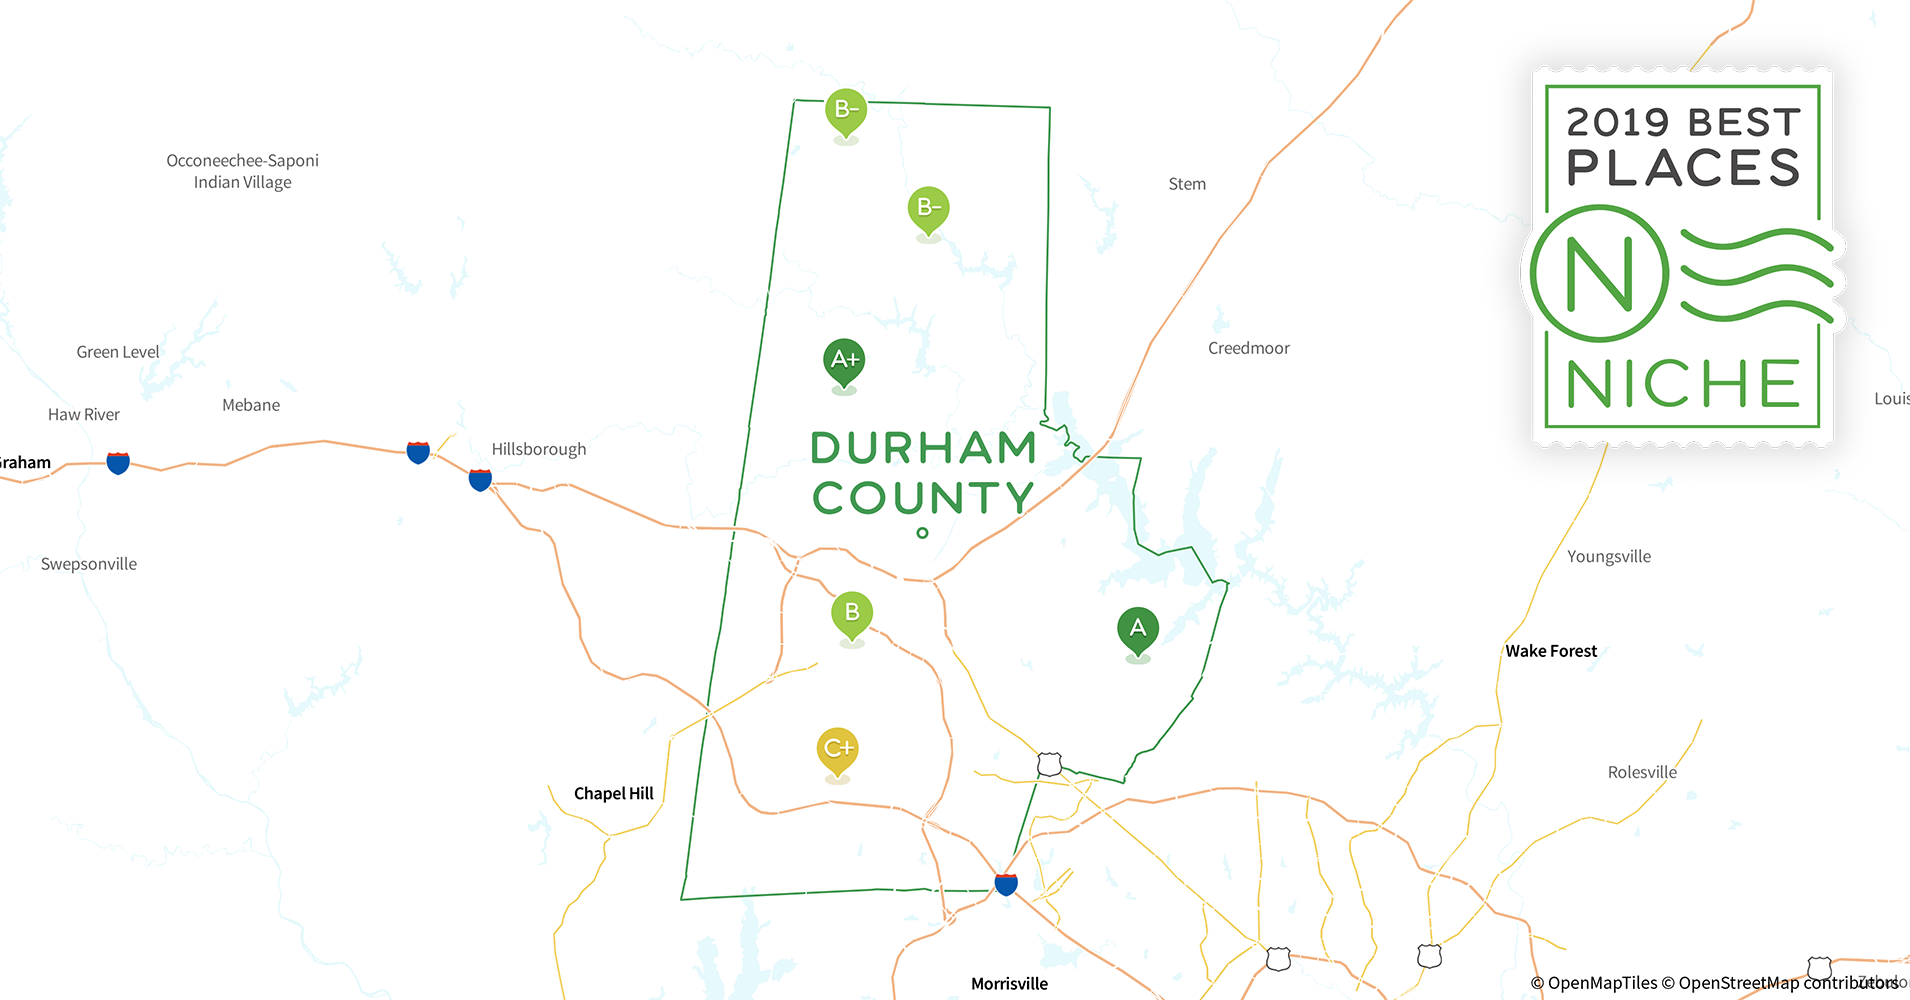 2019 Best Places to Raise a Family in Durham County, NC - Niche Durham Nc Zip Code Map on durham nc weather, durham tech map, durham uk map, durham ca, durham nc state map, durham nc hotels, durham nc city map, wilkes county north carolina map, chapel hill north carolina map, durham neighborhoods map, durham county nc, durham city limits map, downtown durham nc map, durham road map, durham zip codes street names, durham nc elevation map, durham north carolina, durham freeway map, granville county nc map, downtown salisbury nc map,